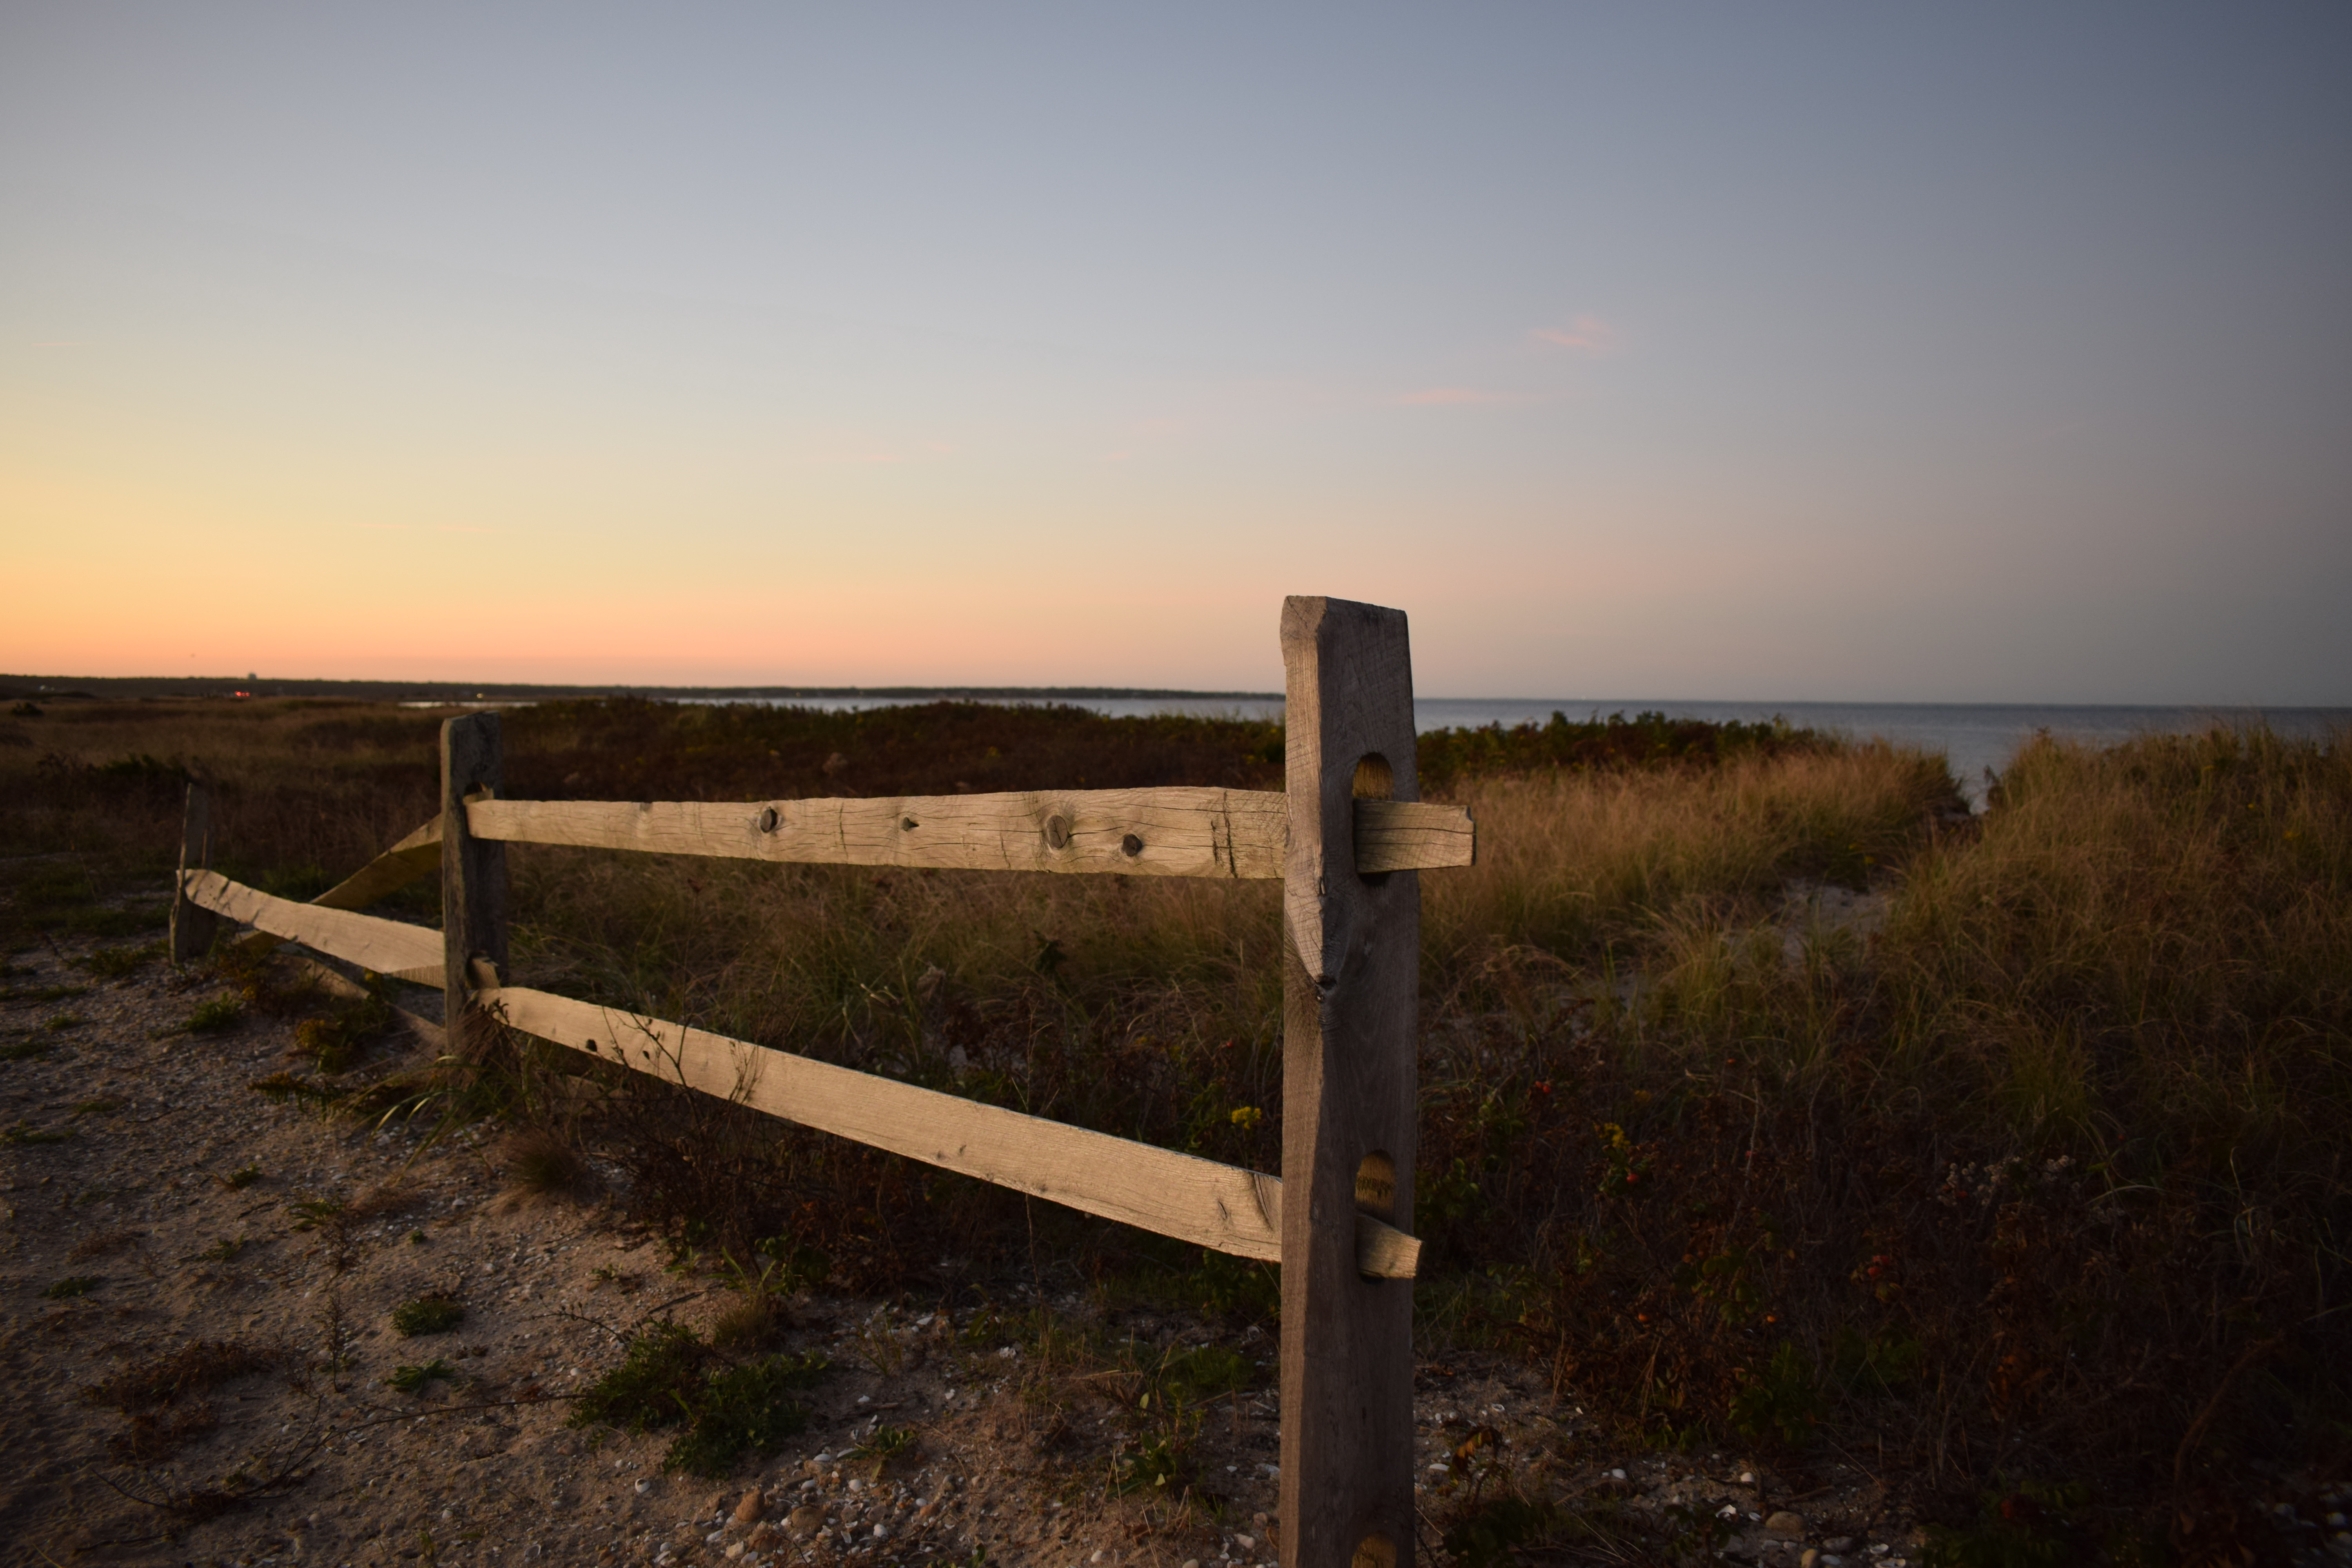 Favorite Things, Fence and Sunset at State Beach, Martha's Vineyard